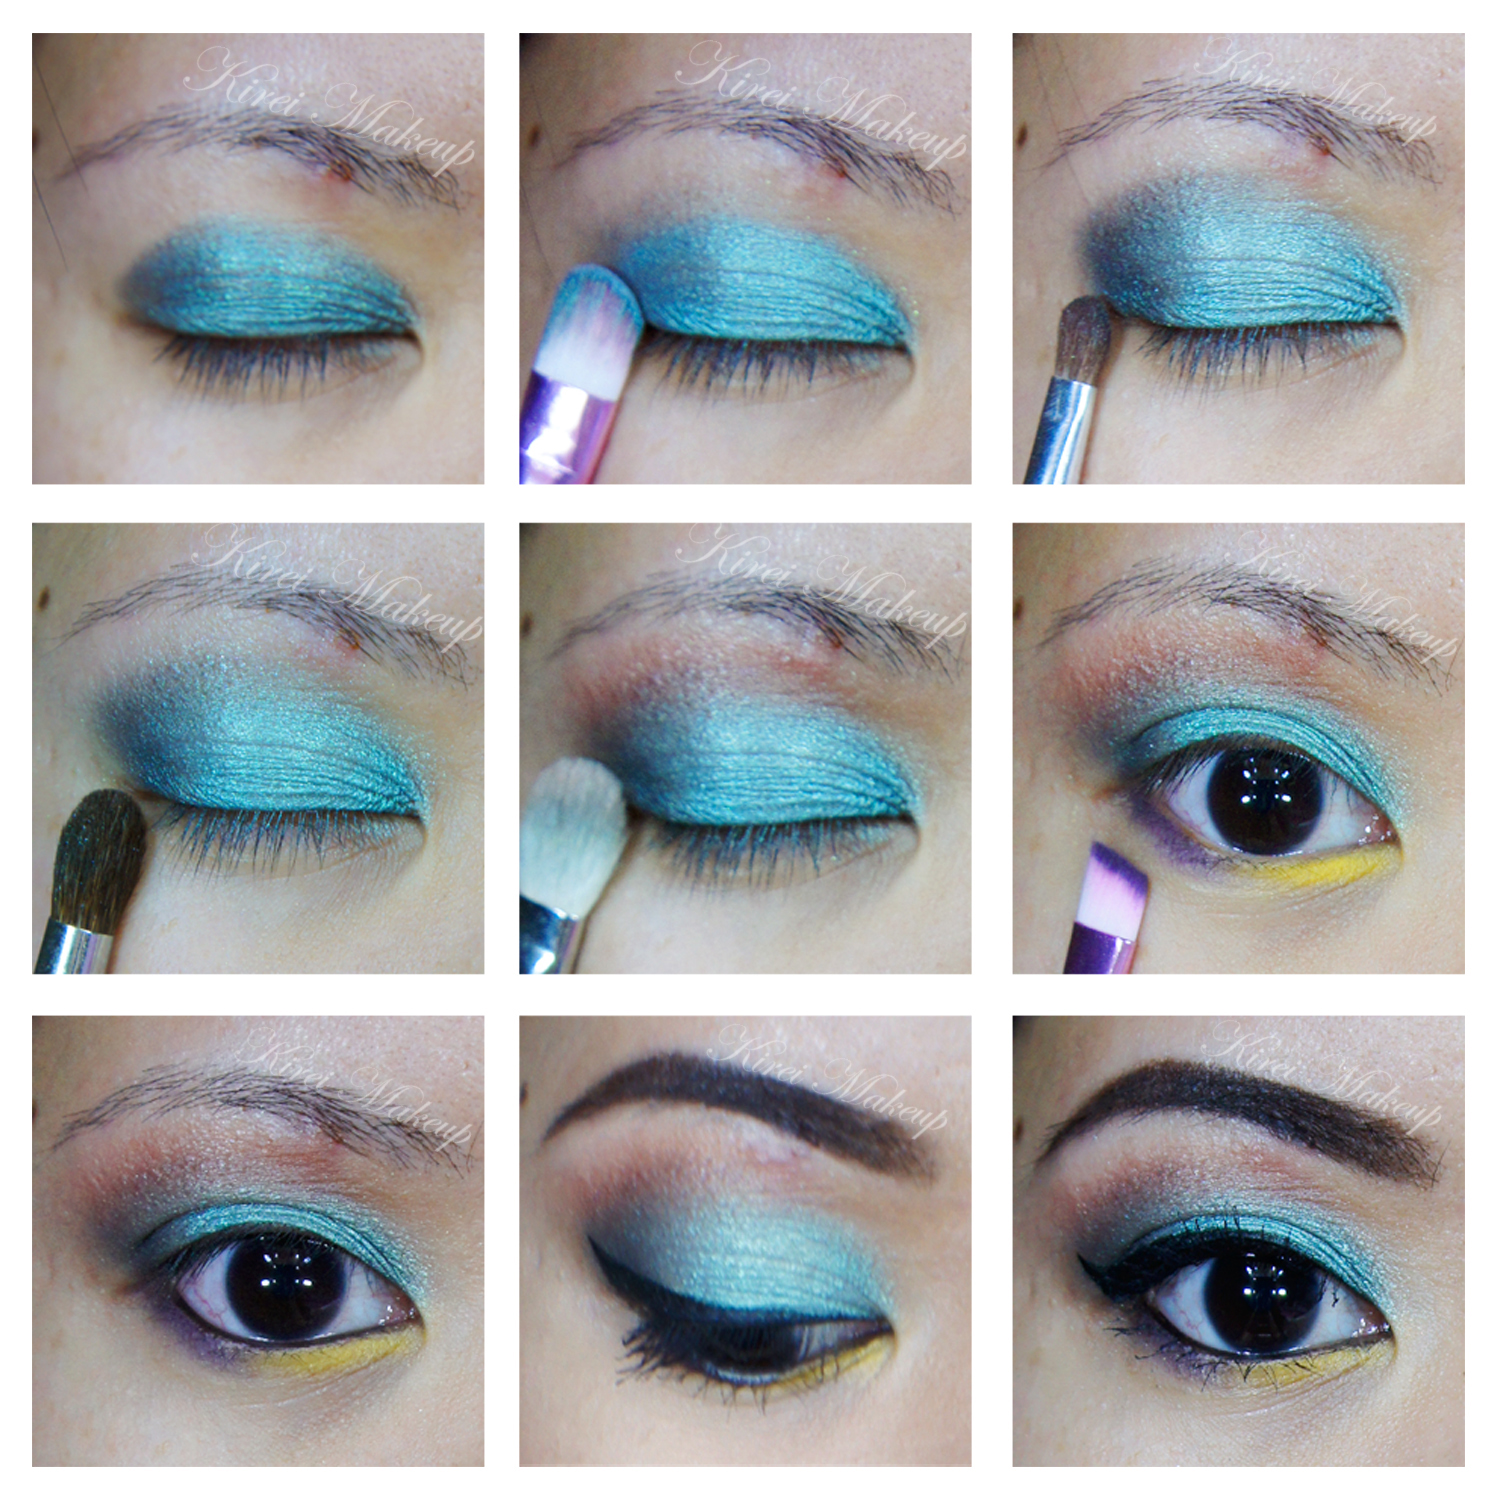 Purple and teal makeup